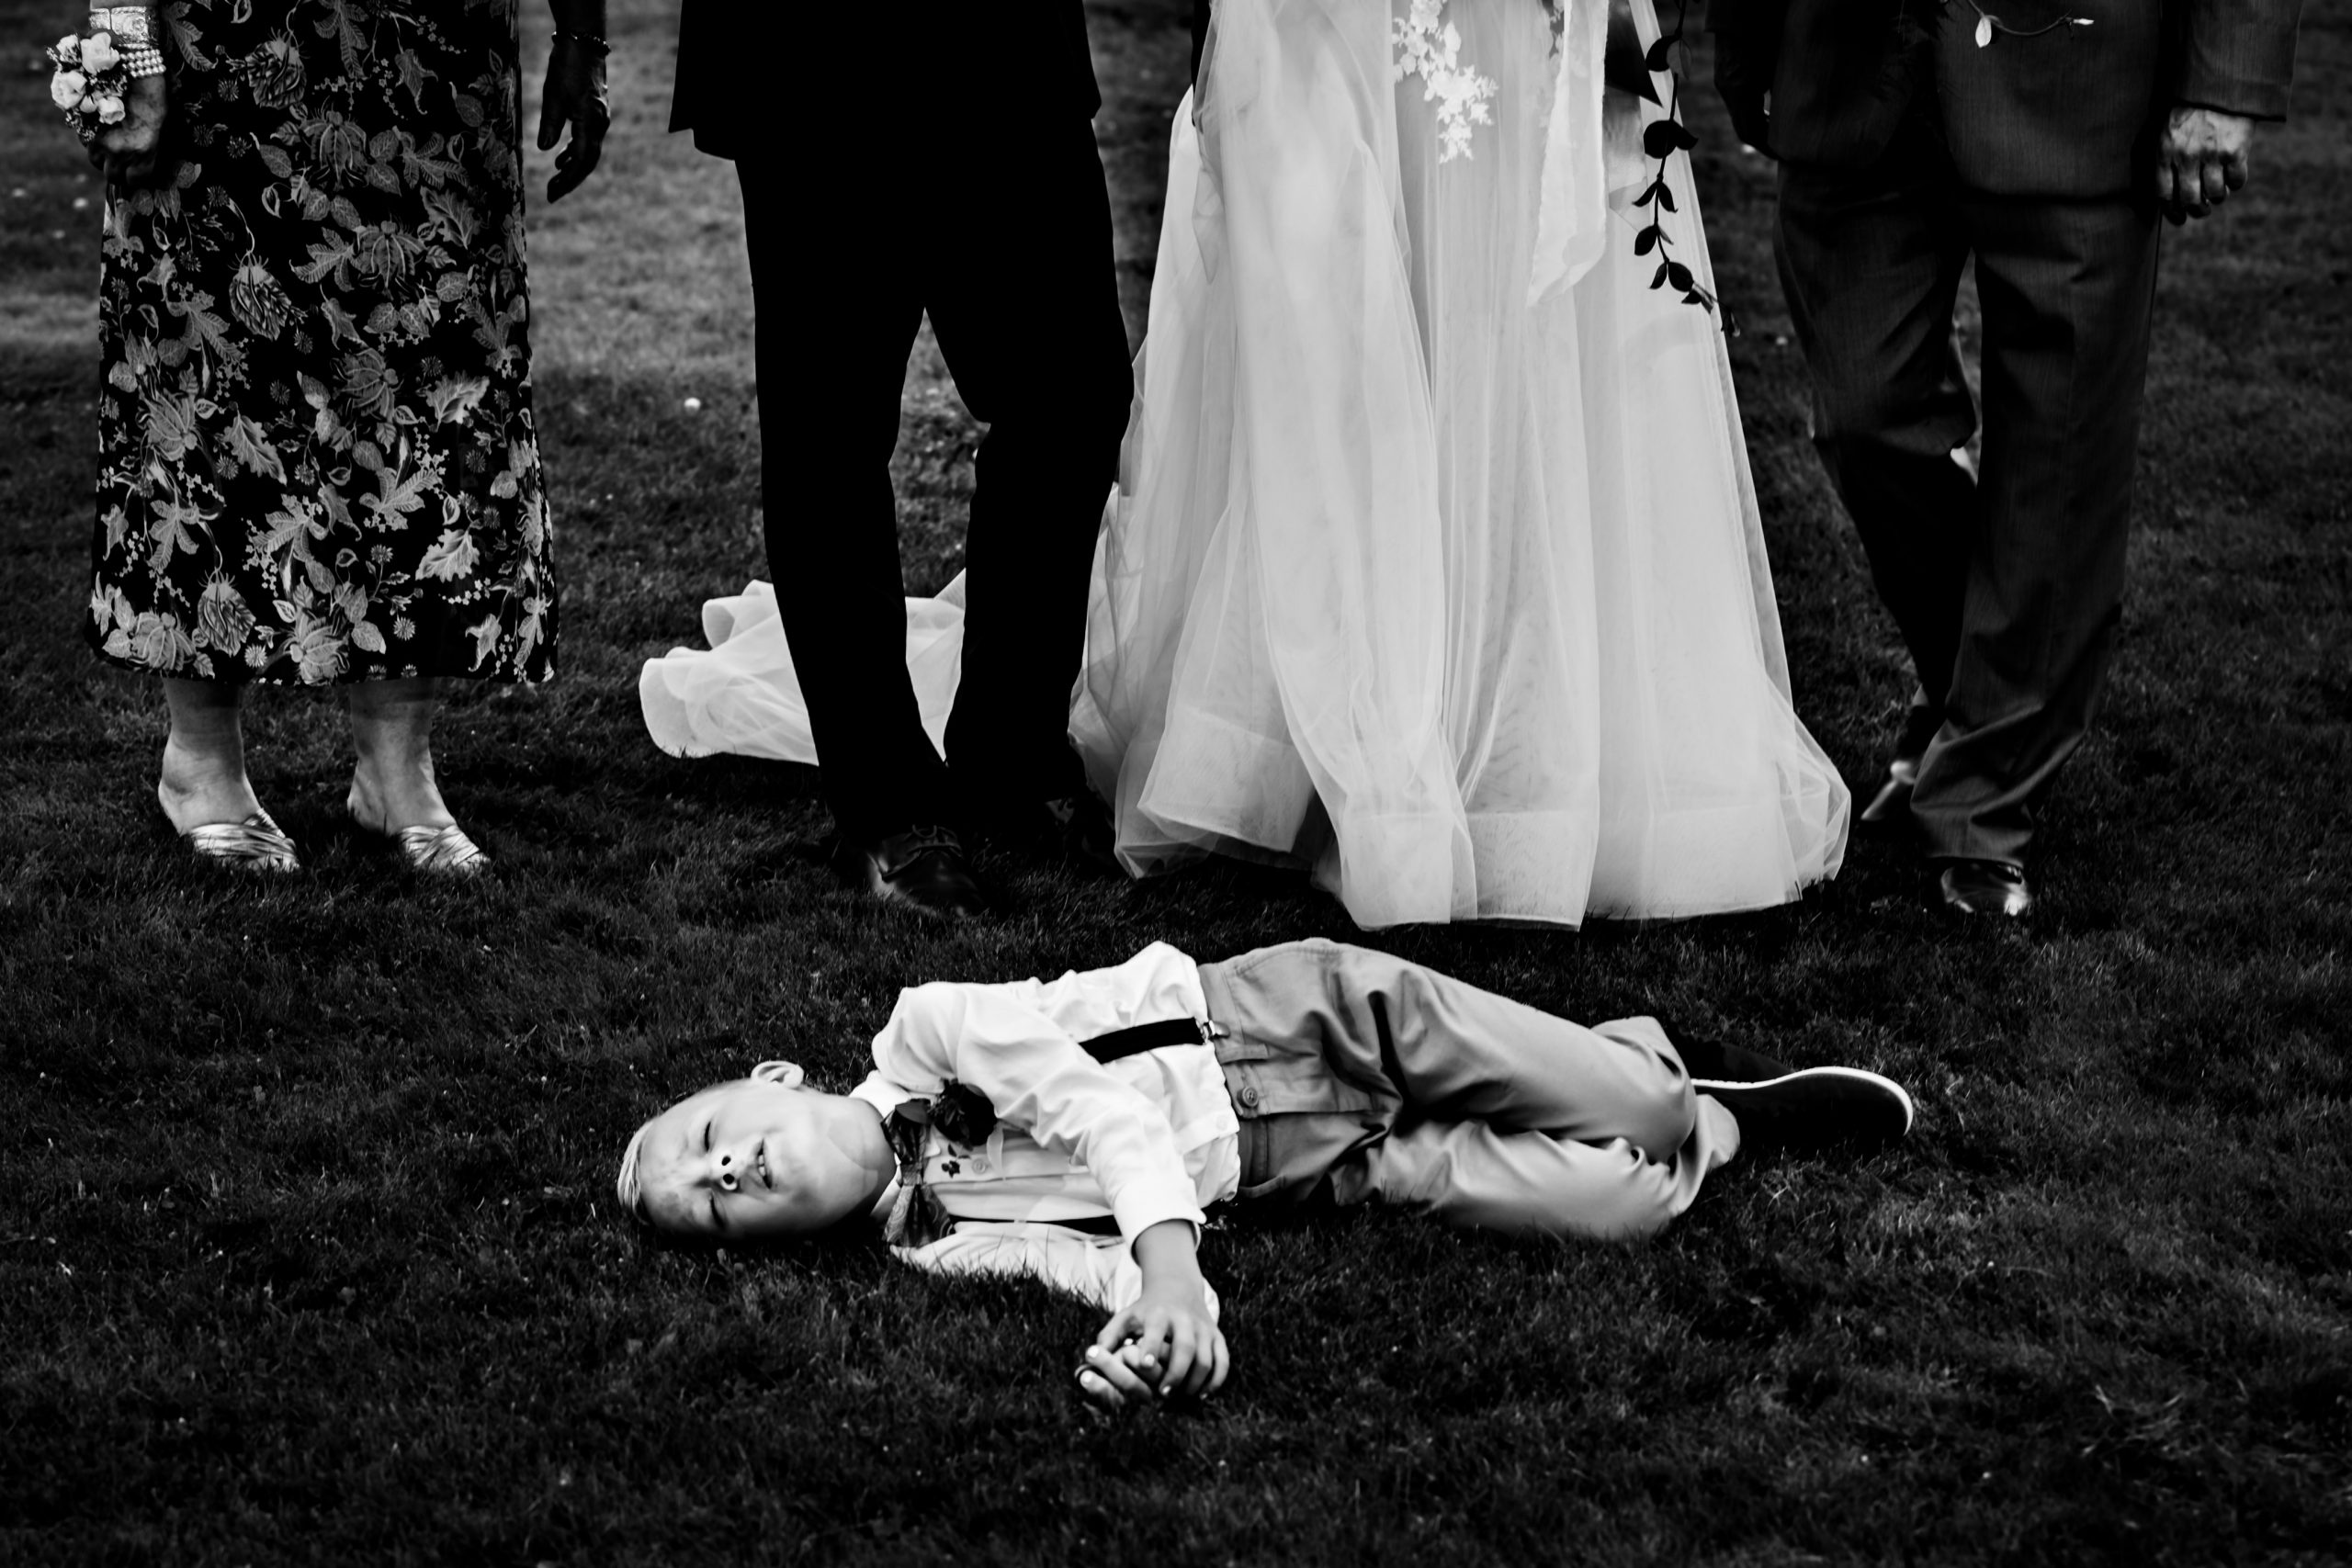 Boy is tired and bored at the wedding ceremony.